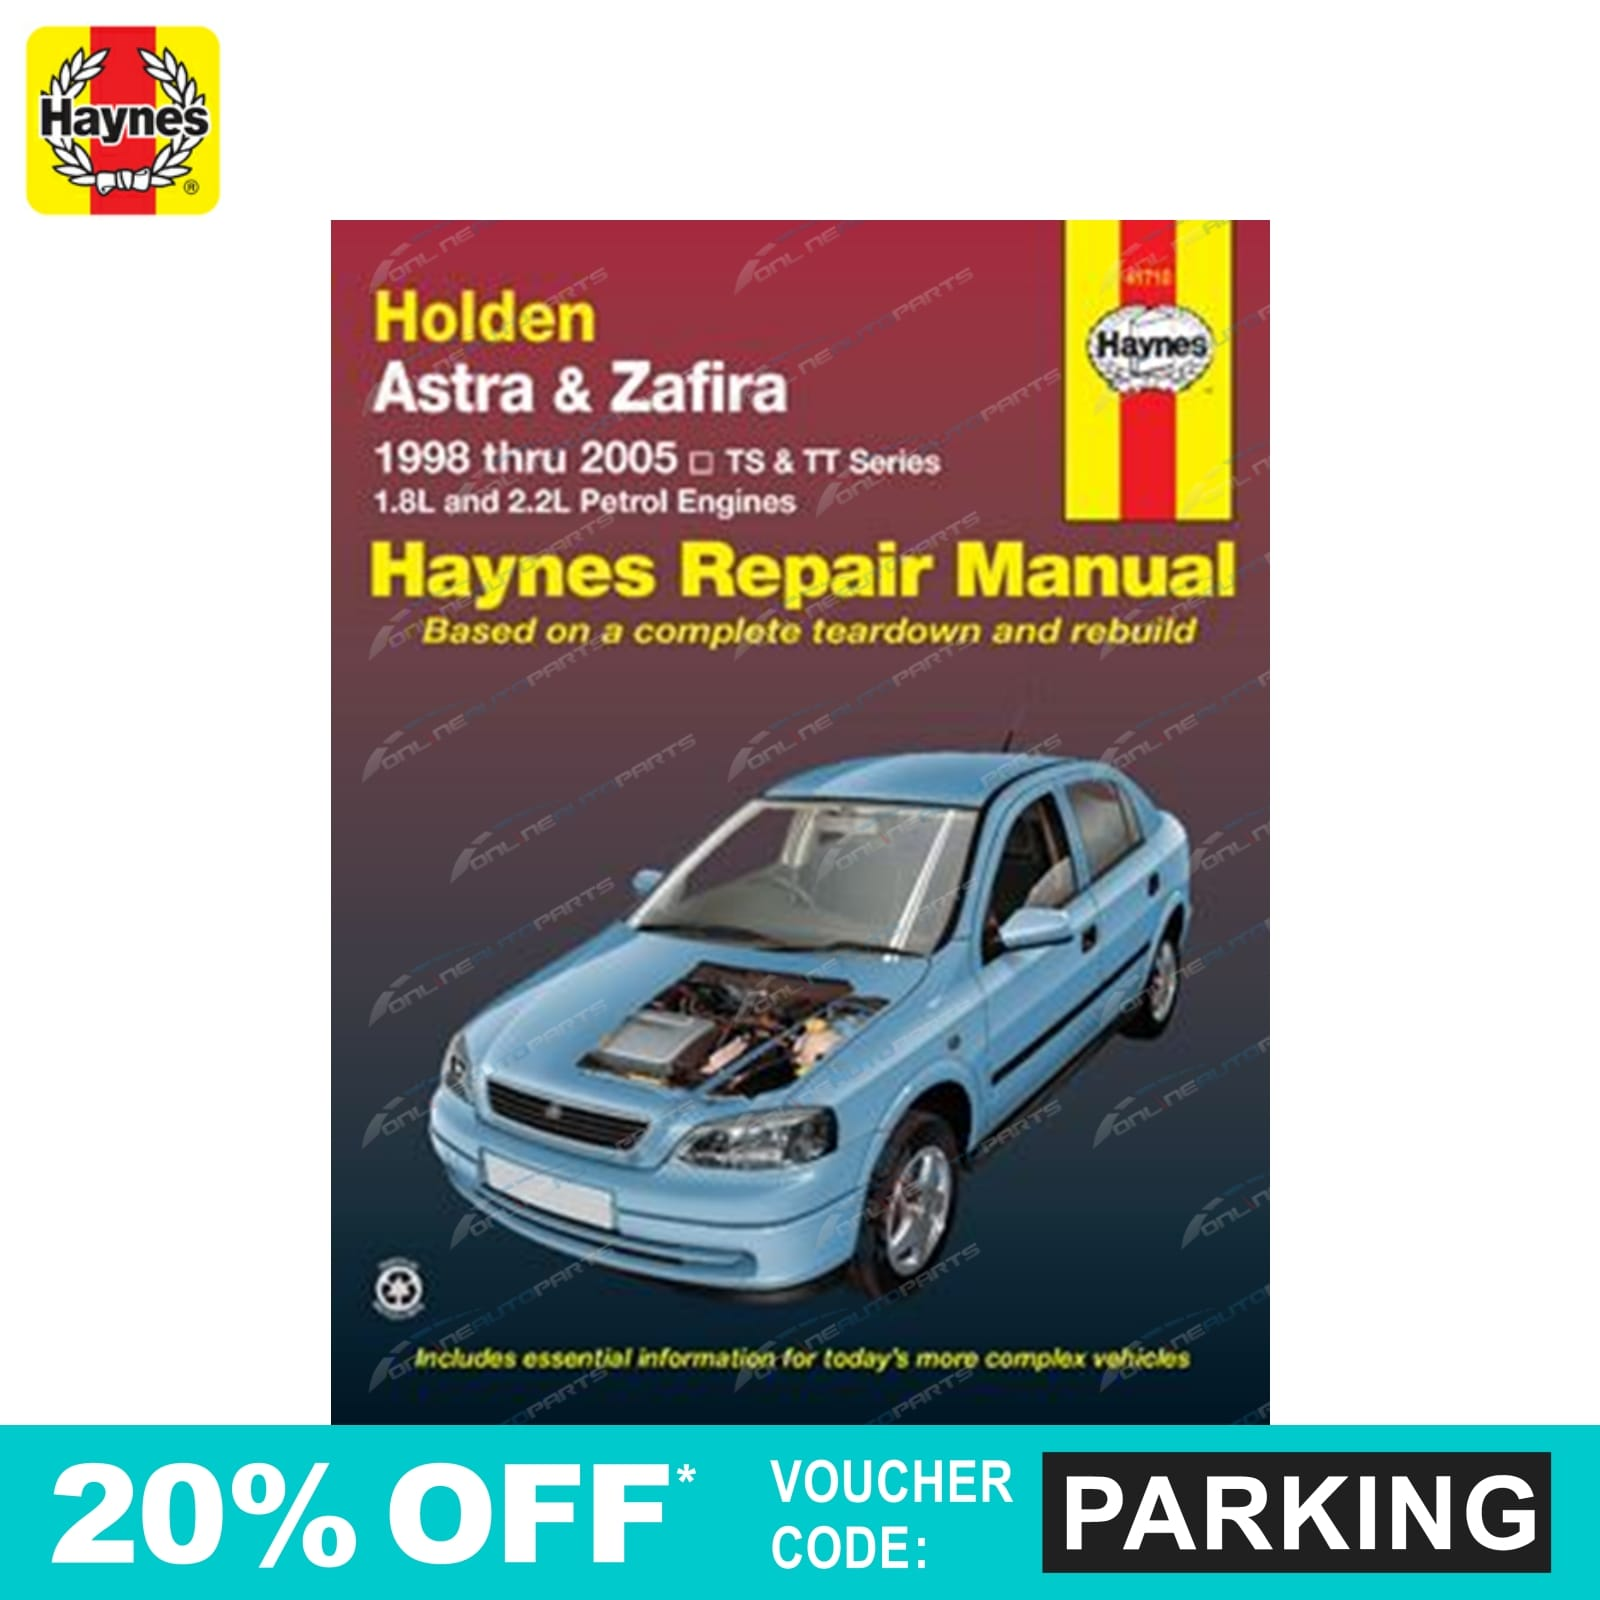 Holden astra ts owners manual user guide manual that easy to read holden astra ts owners manual professional user manual ebooks u2022 rh gogradresumes com holden astra ts repair manual free holden astra ts workshop manual fandeluxe Images